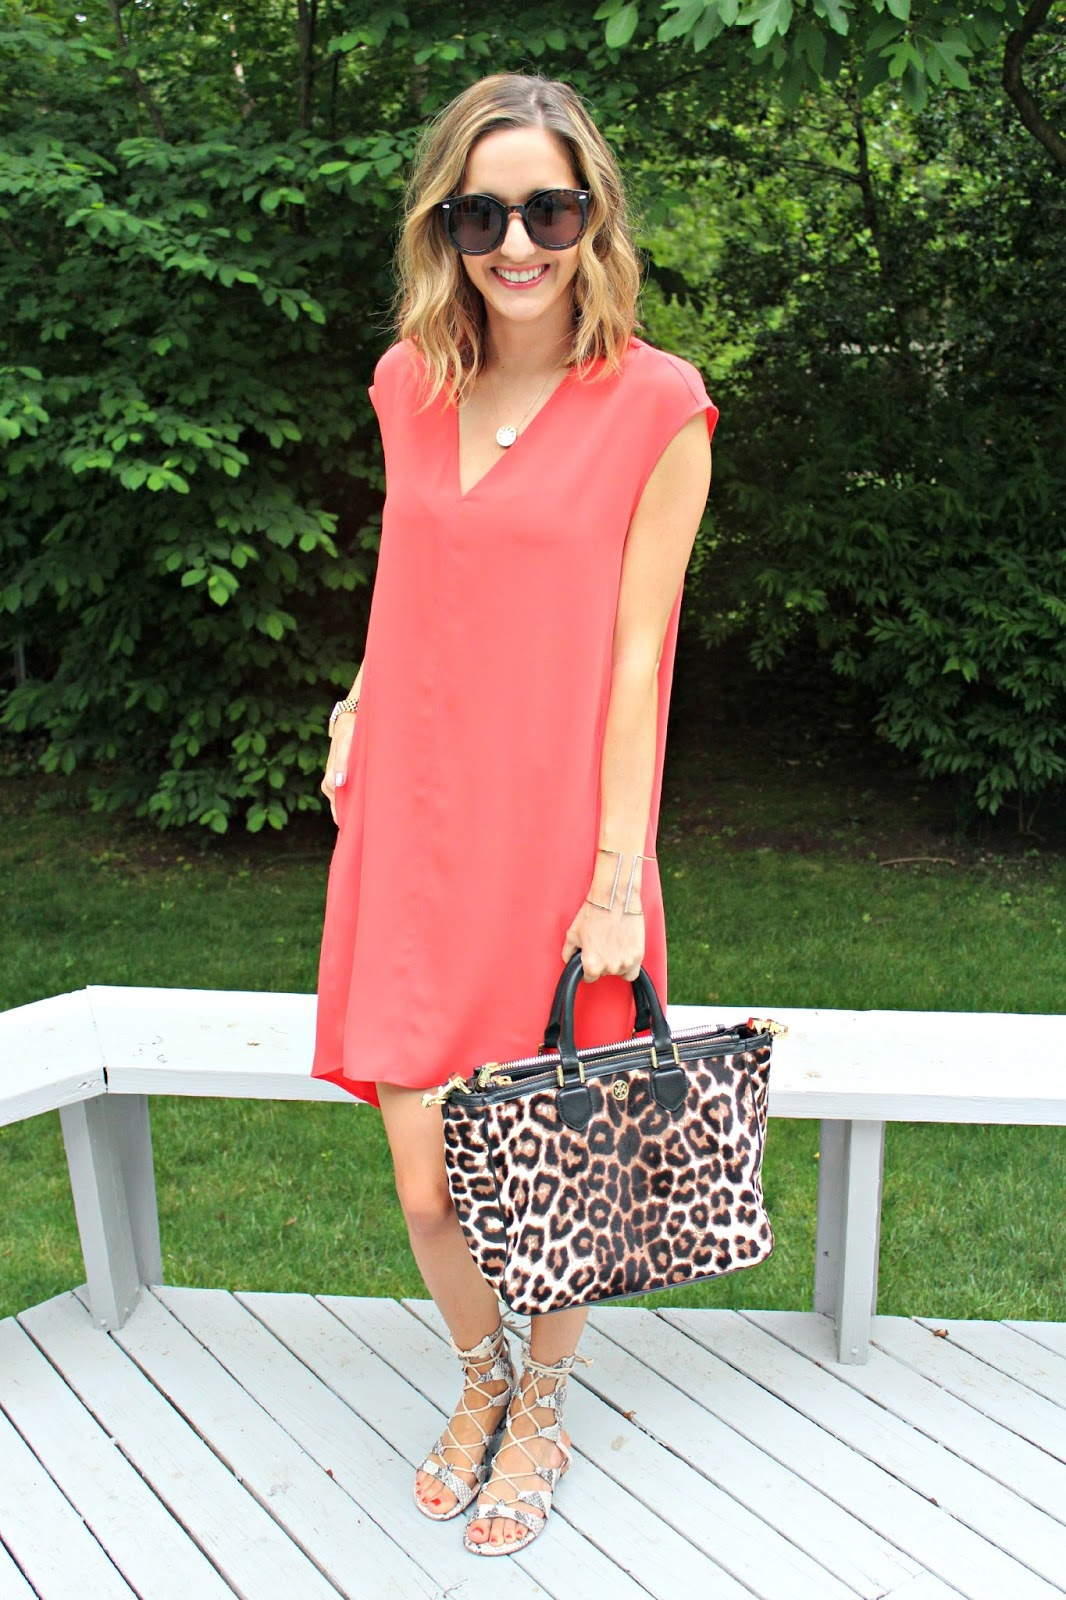 tory burch leopard tote bag